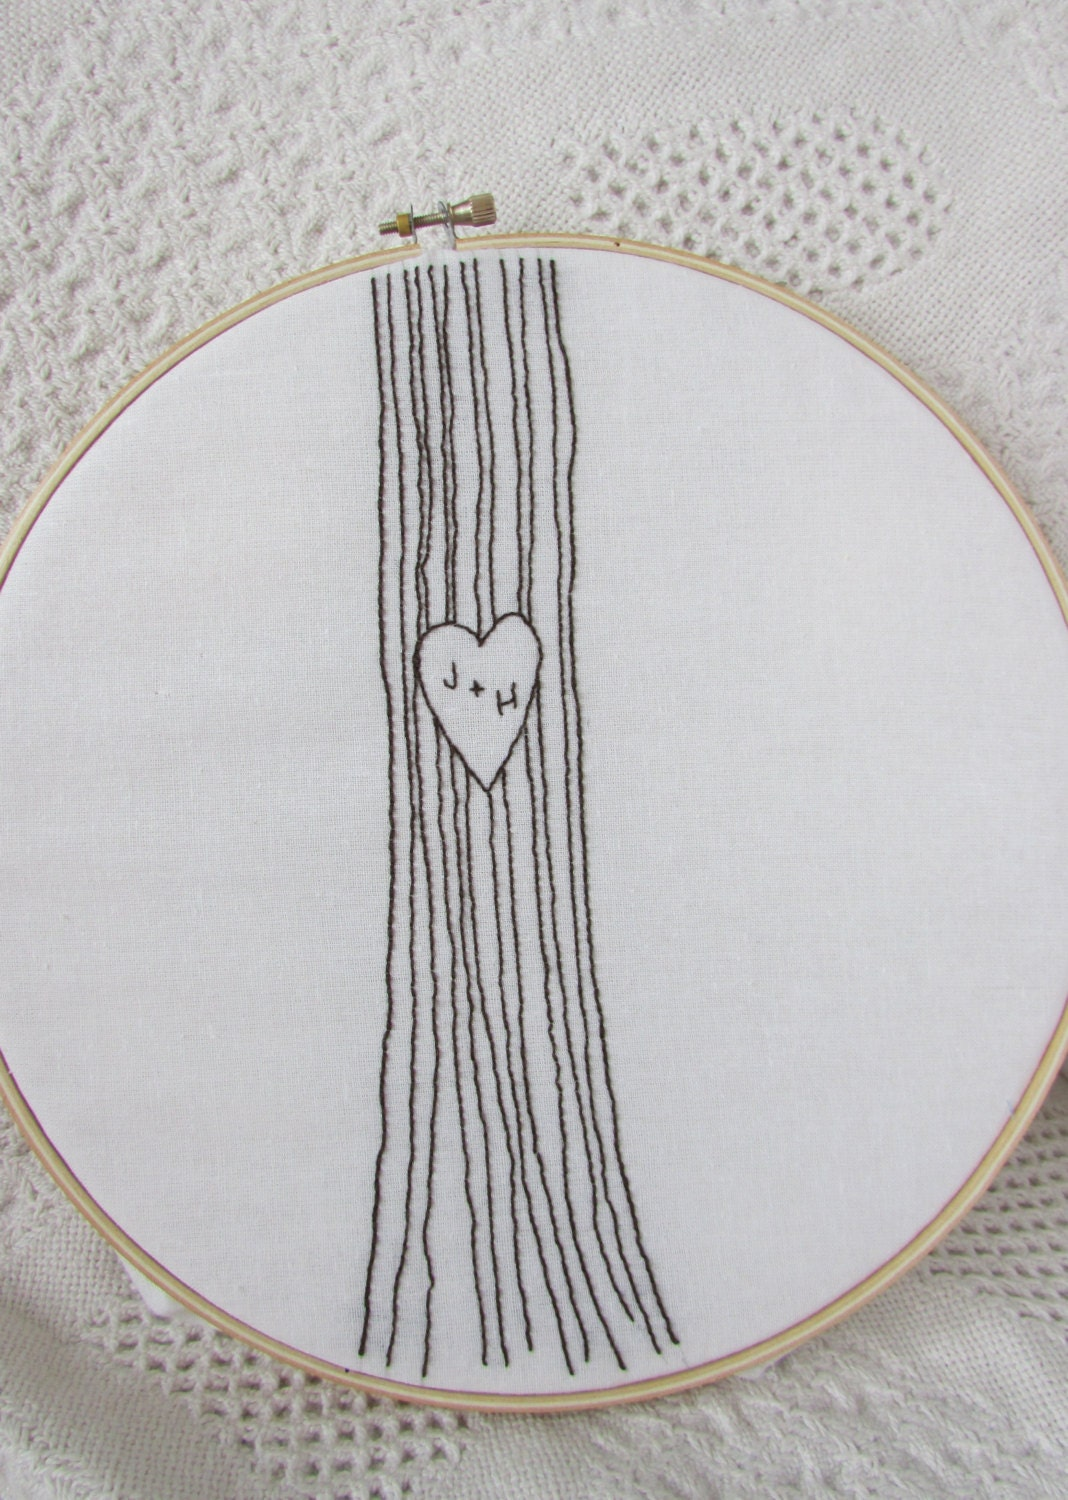 Hand embroidery pattern initials in a tree